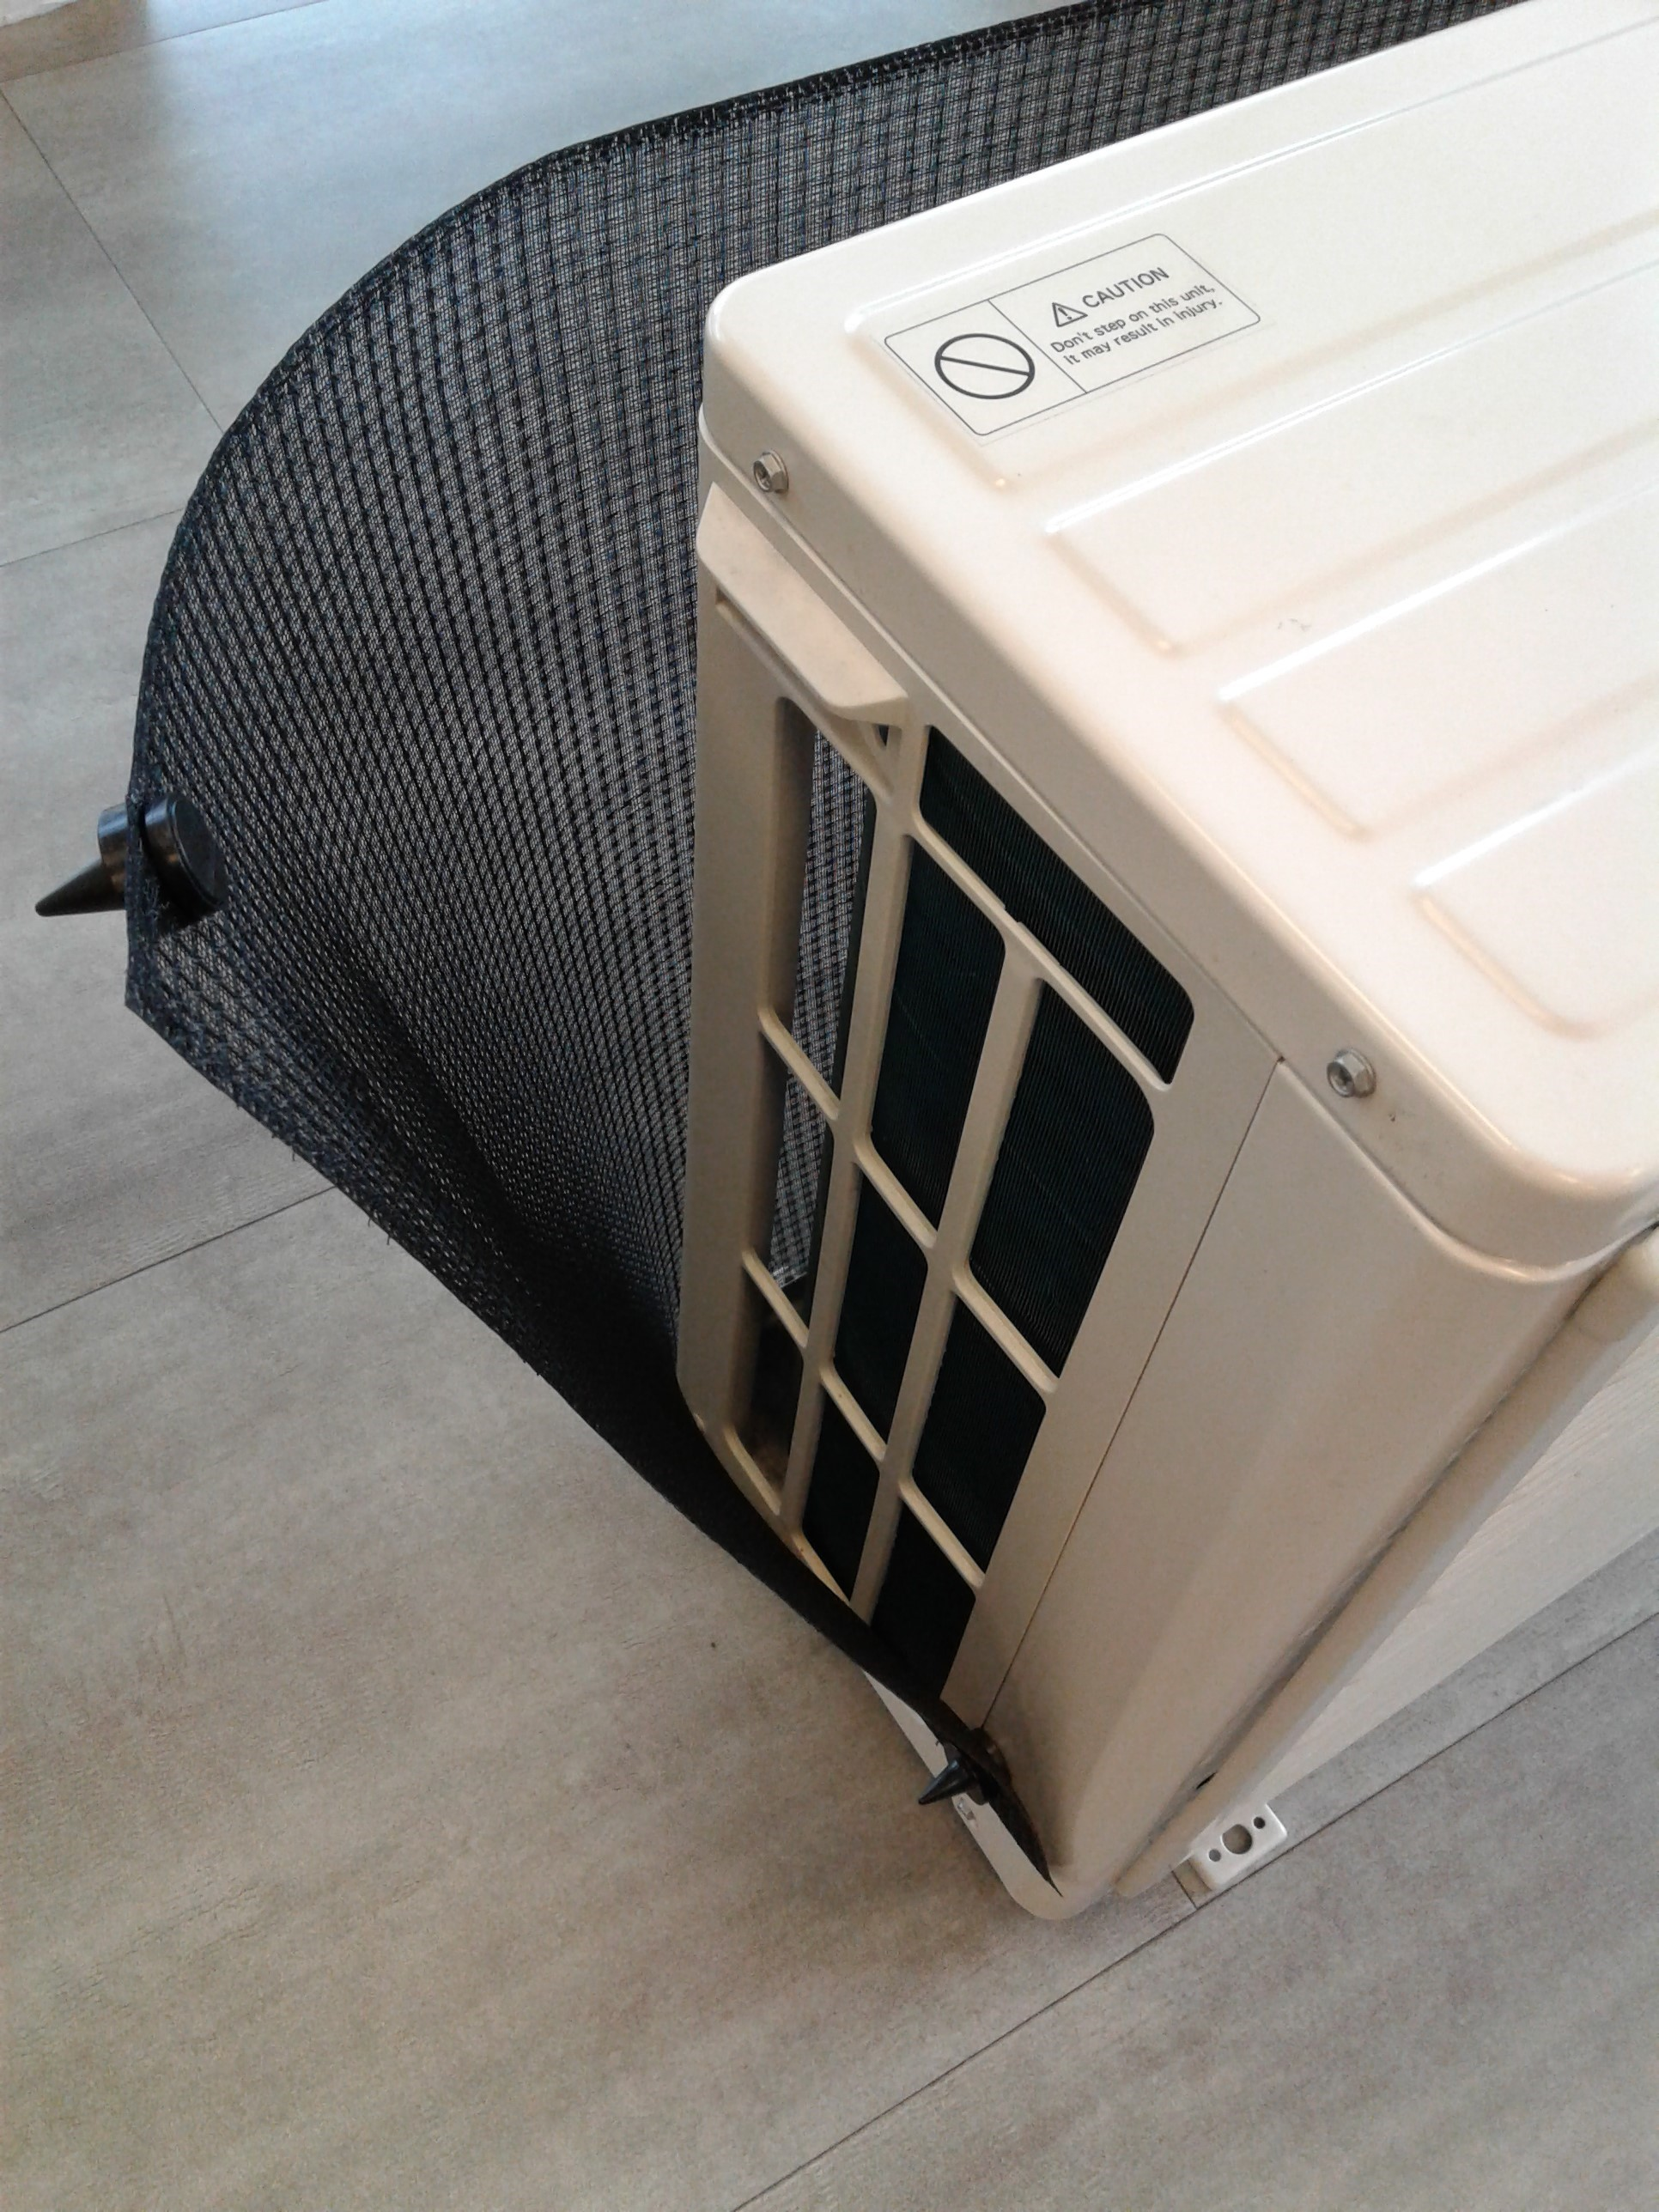 Permatron Prevent Outdoor Air Filter Wrap Around Style Air